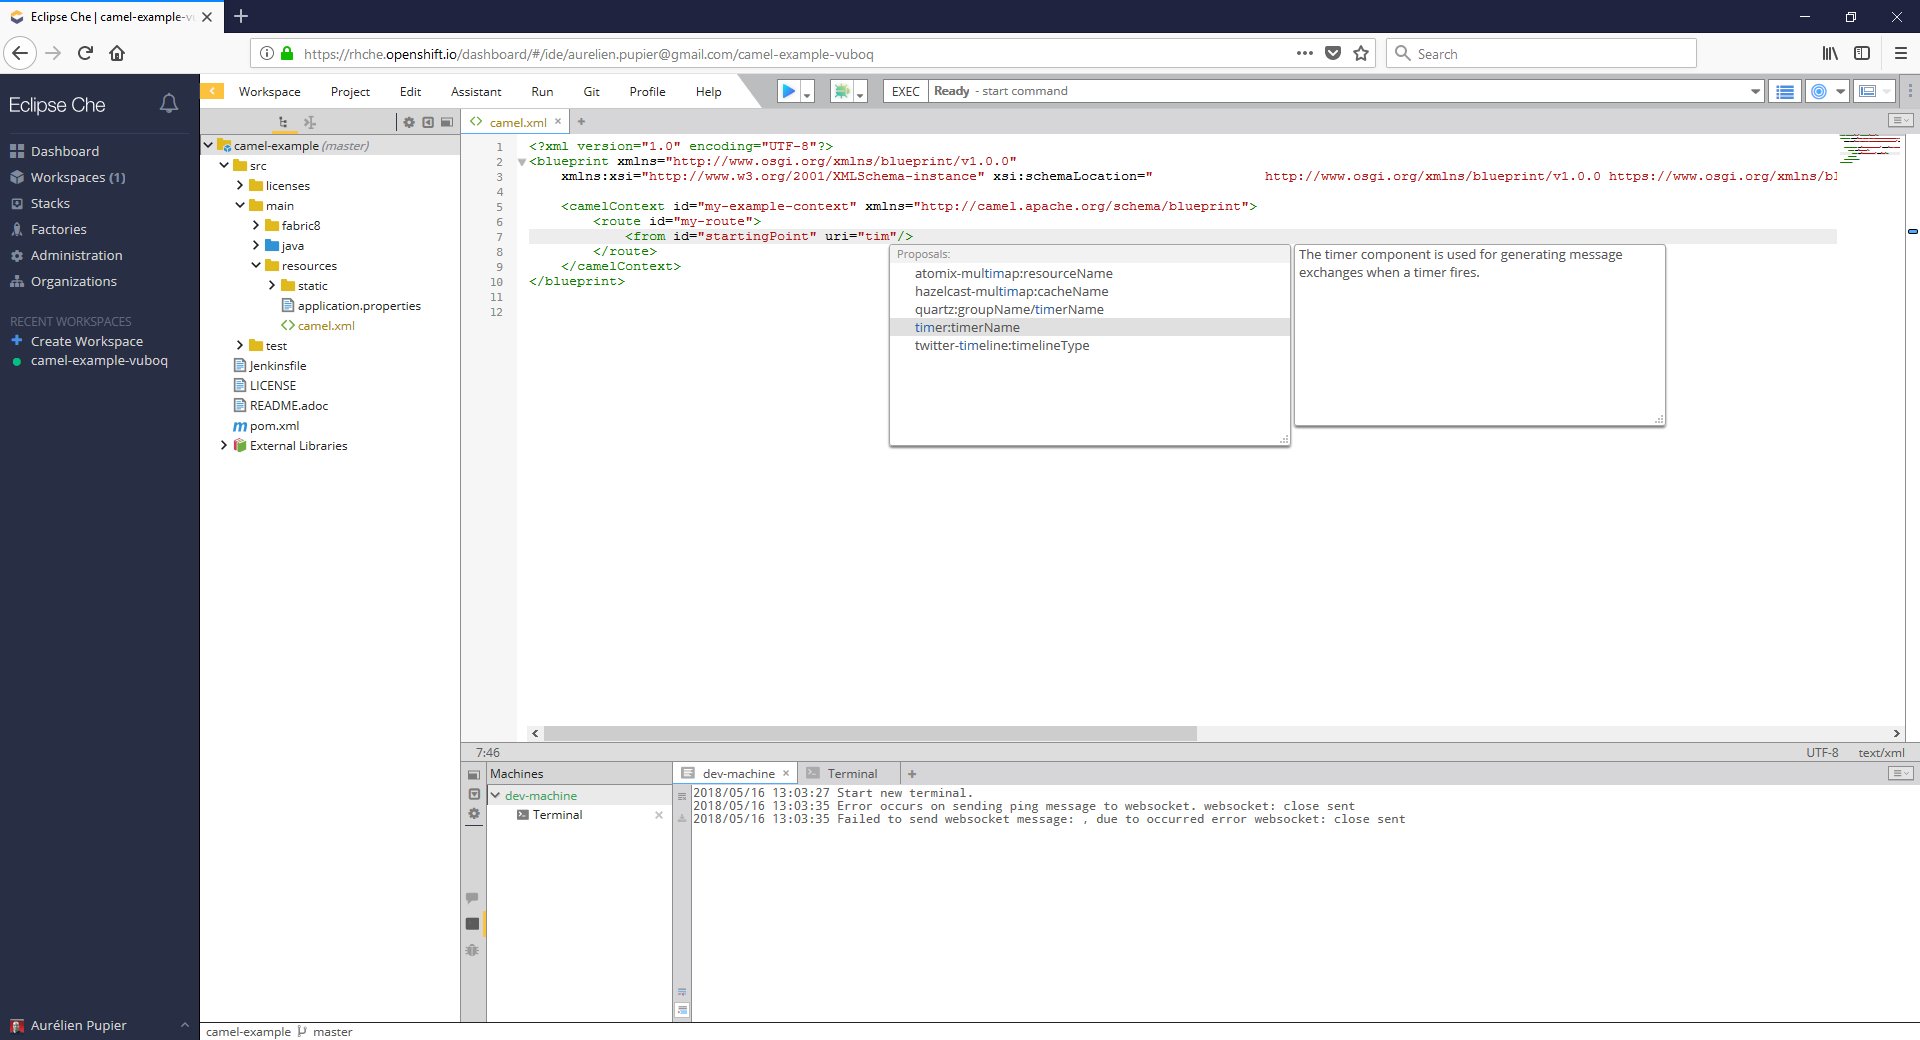 Apache camel uri completion easy installation for eclipse vs code enjoy malvernweather Choice Image